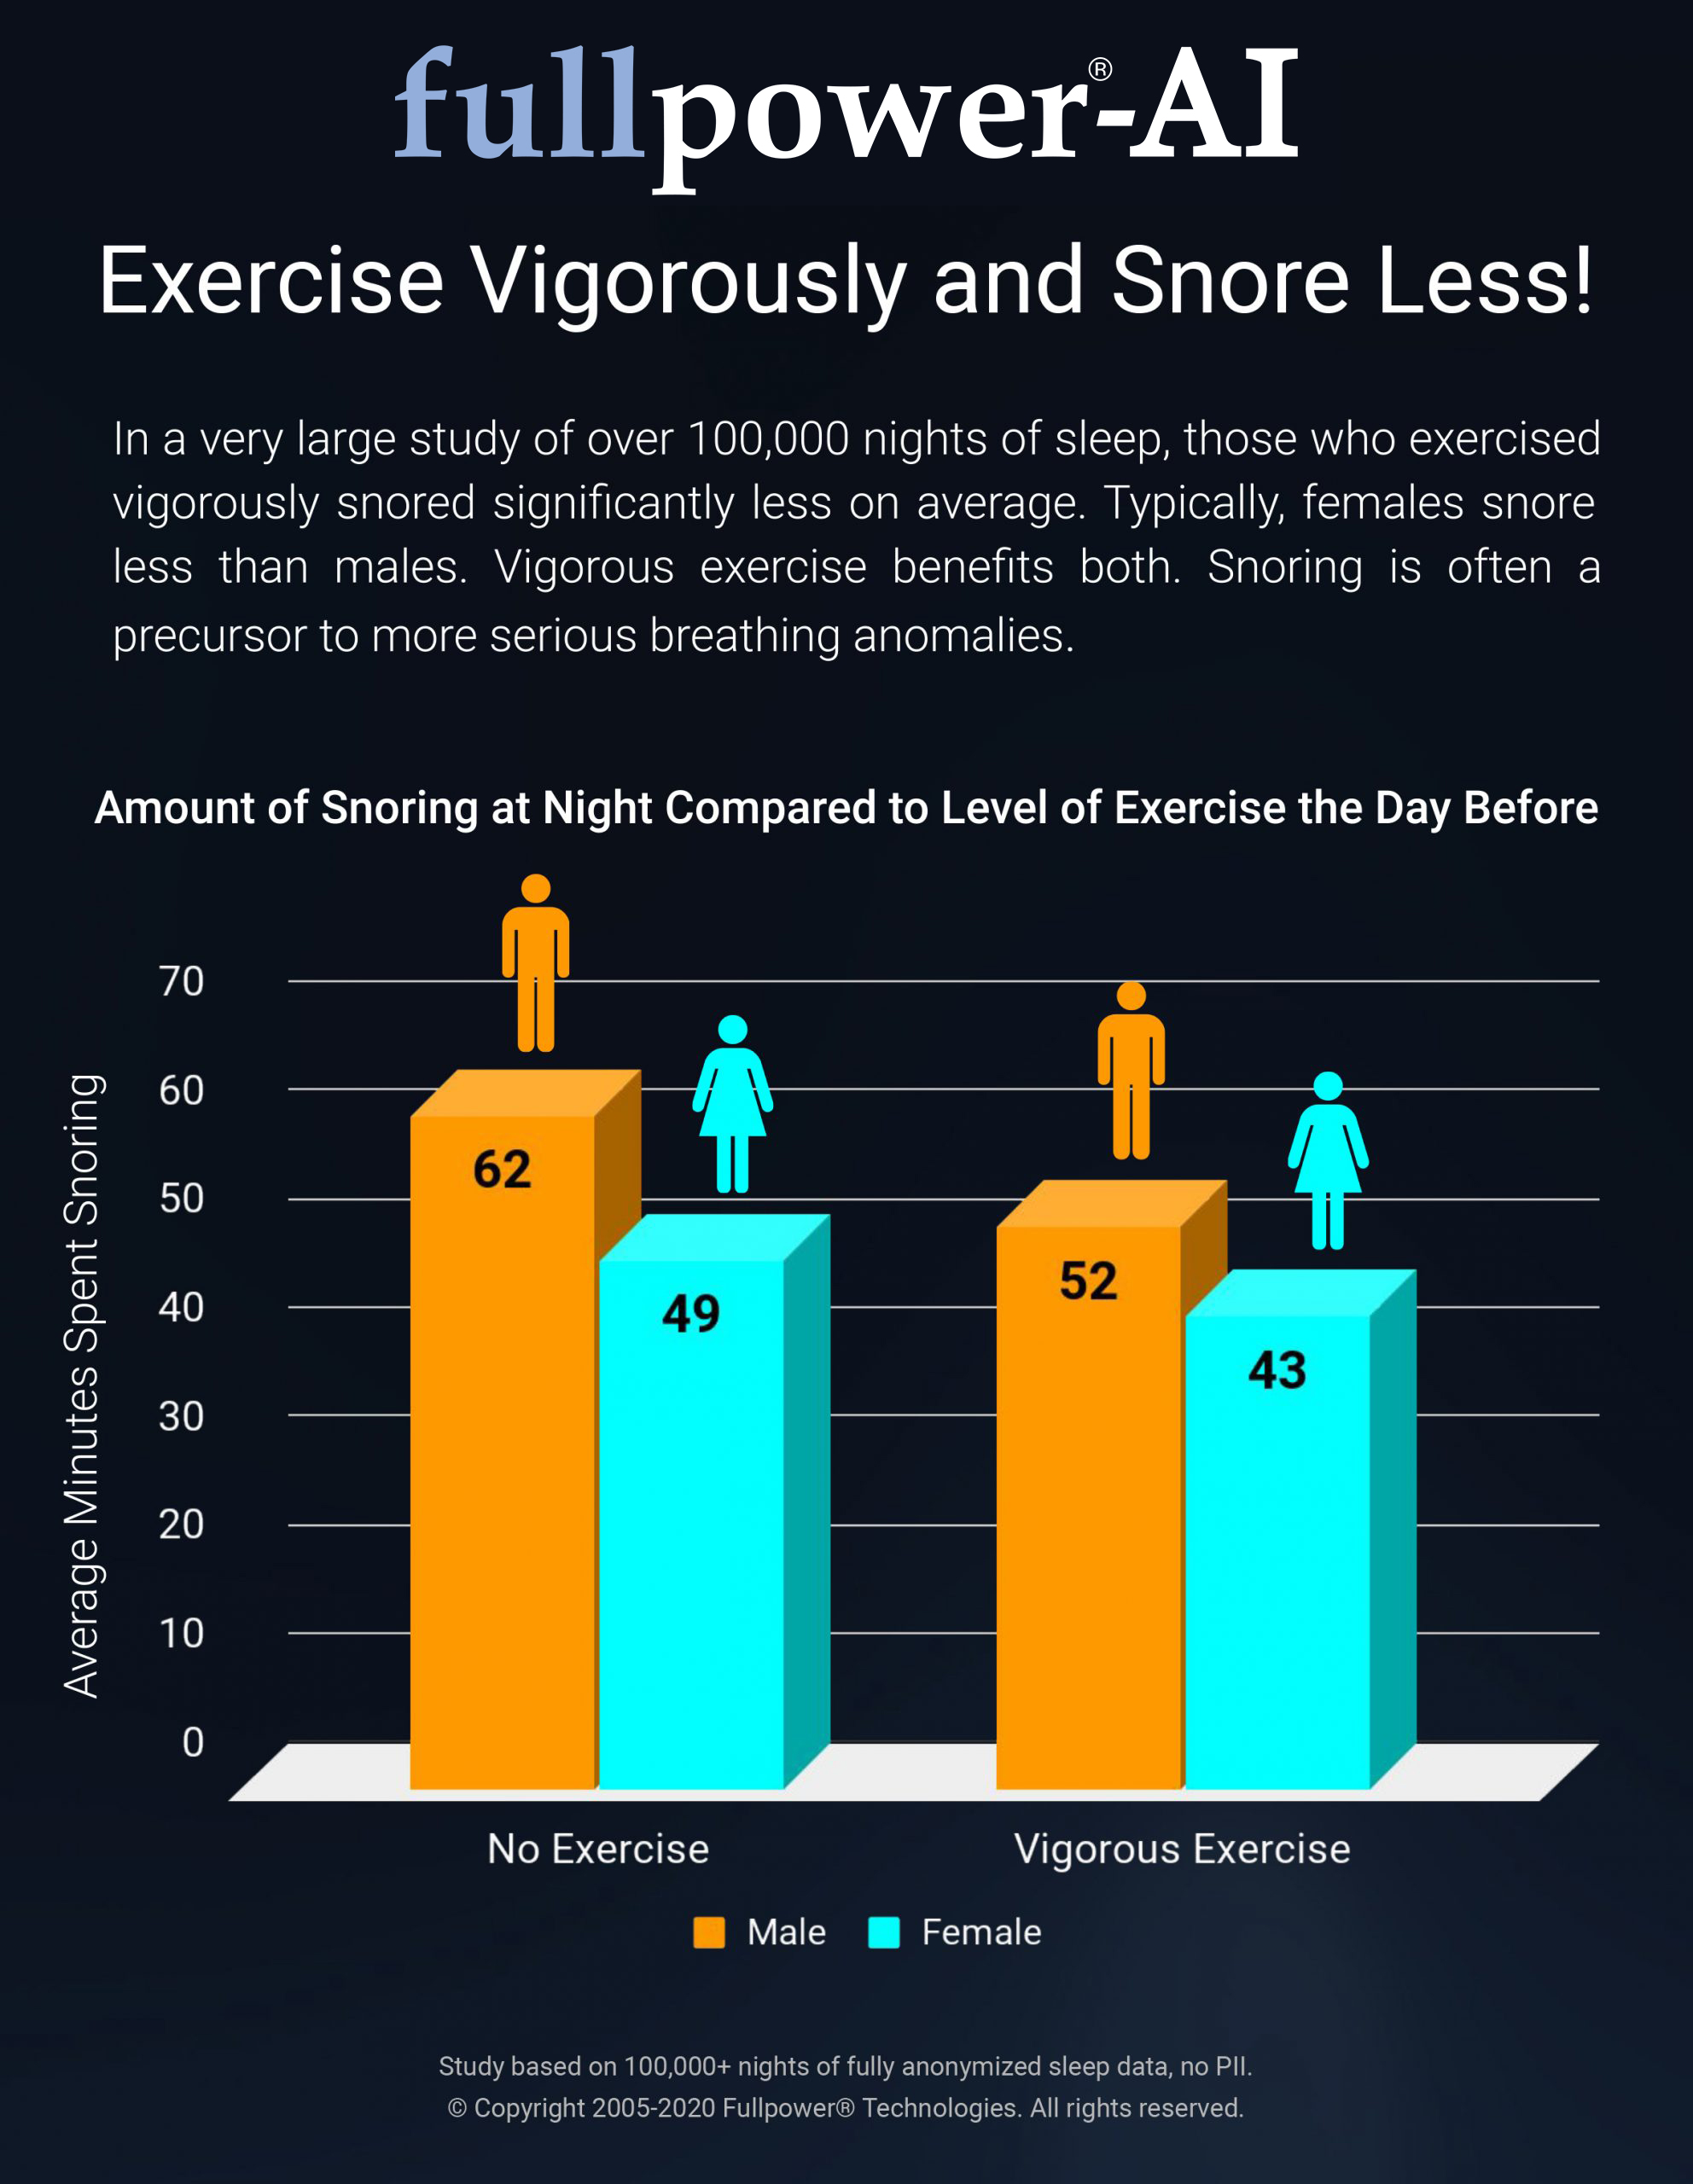 Exercise Vigorously and Snore Less